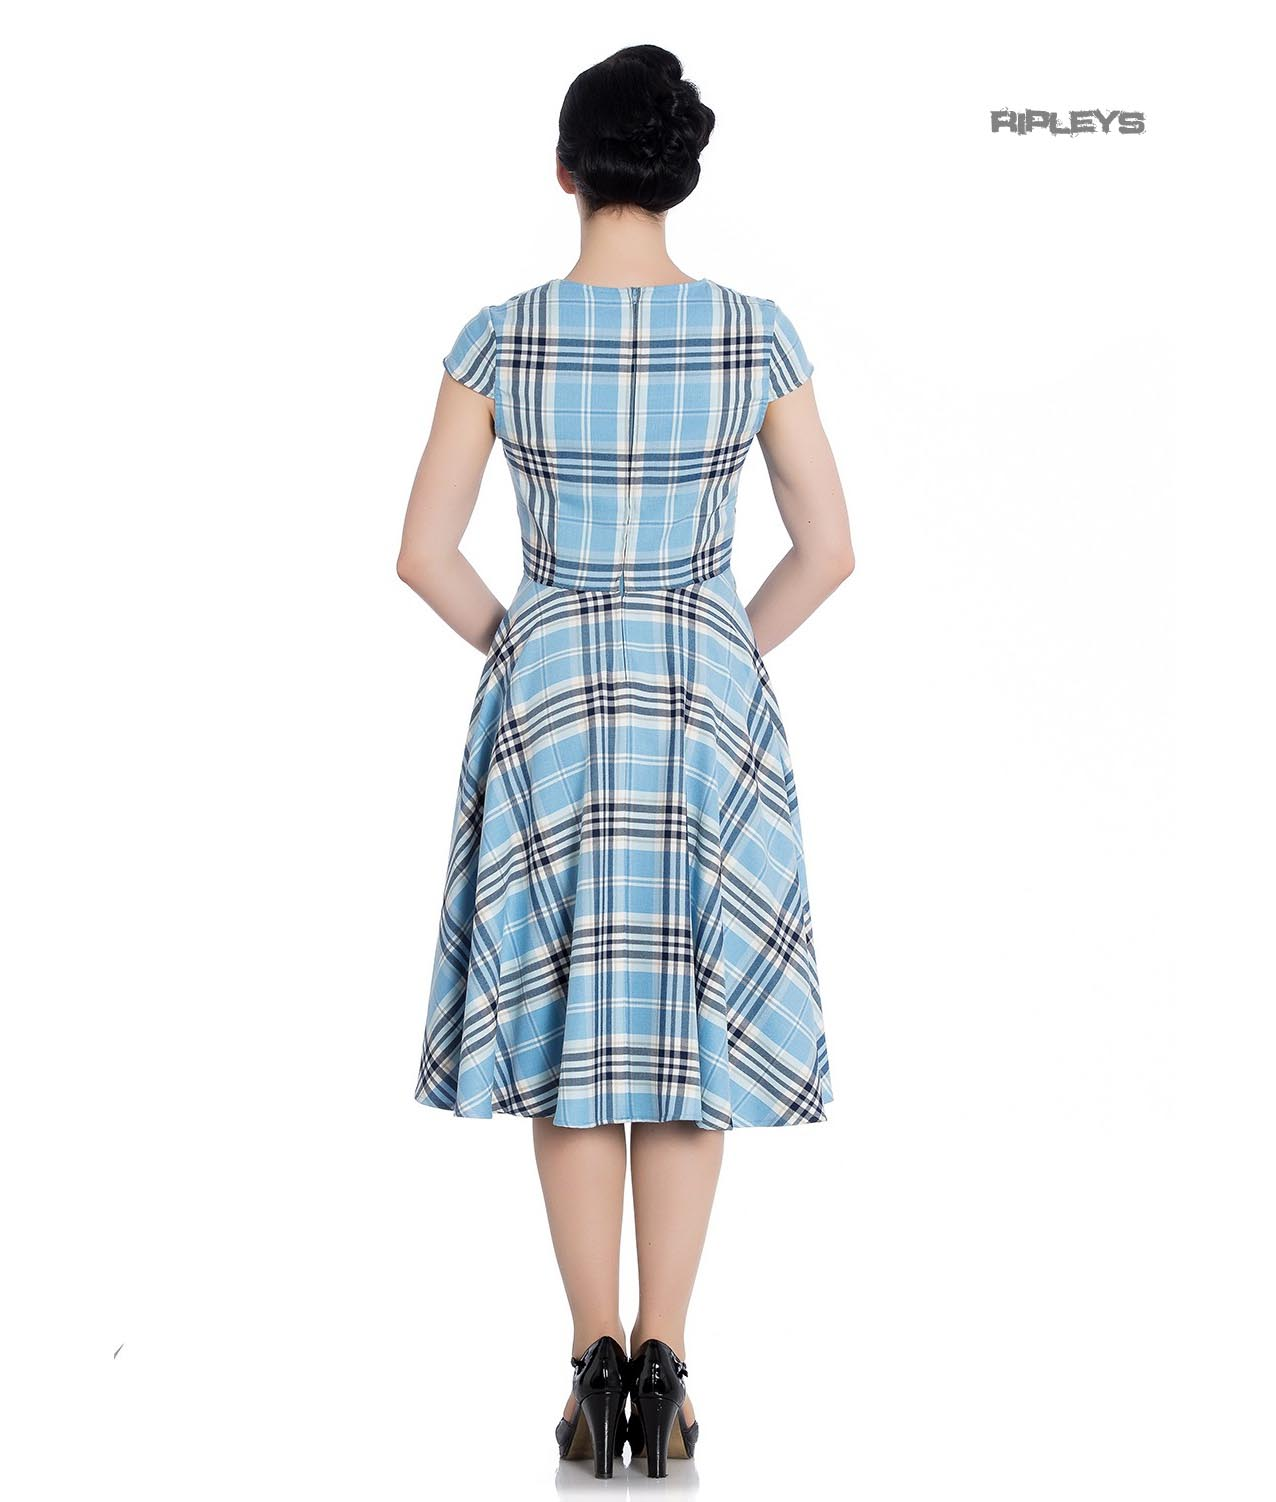 Hell-Bunny-Pinup-50s-Dress-ABERDEEN-Hogmony-Sky-Blue-amp-White-Tartan-All-Sizes thumbnail 12